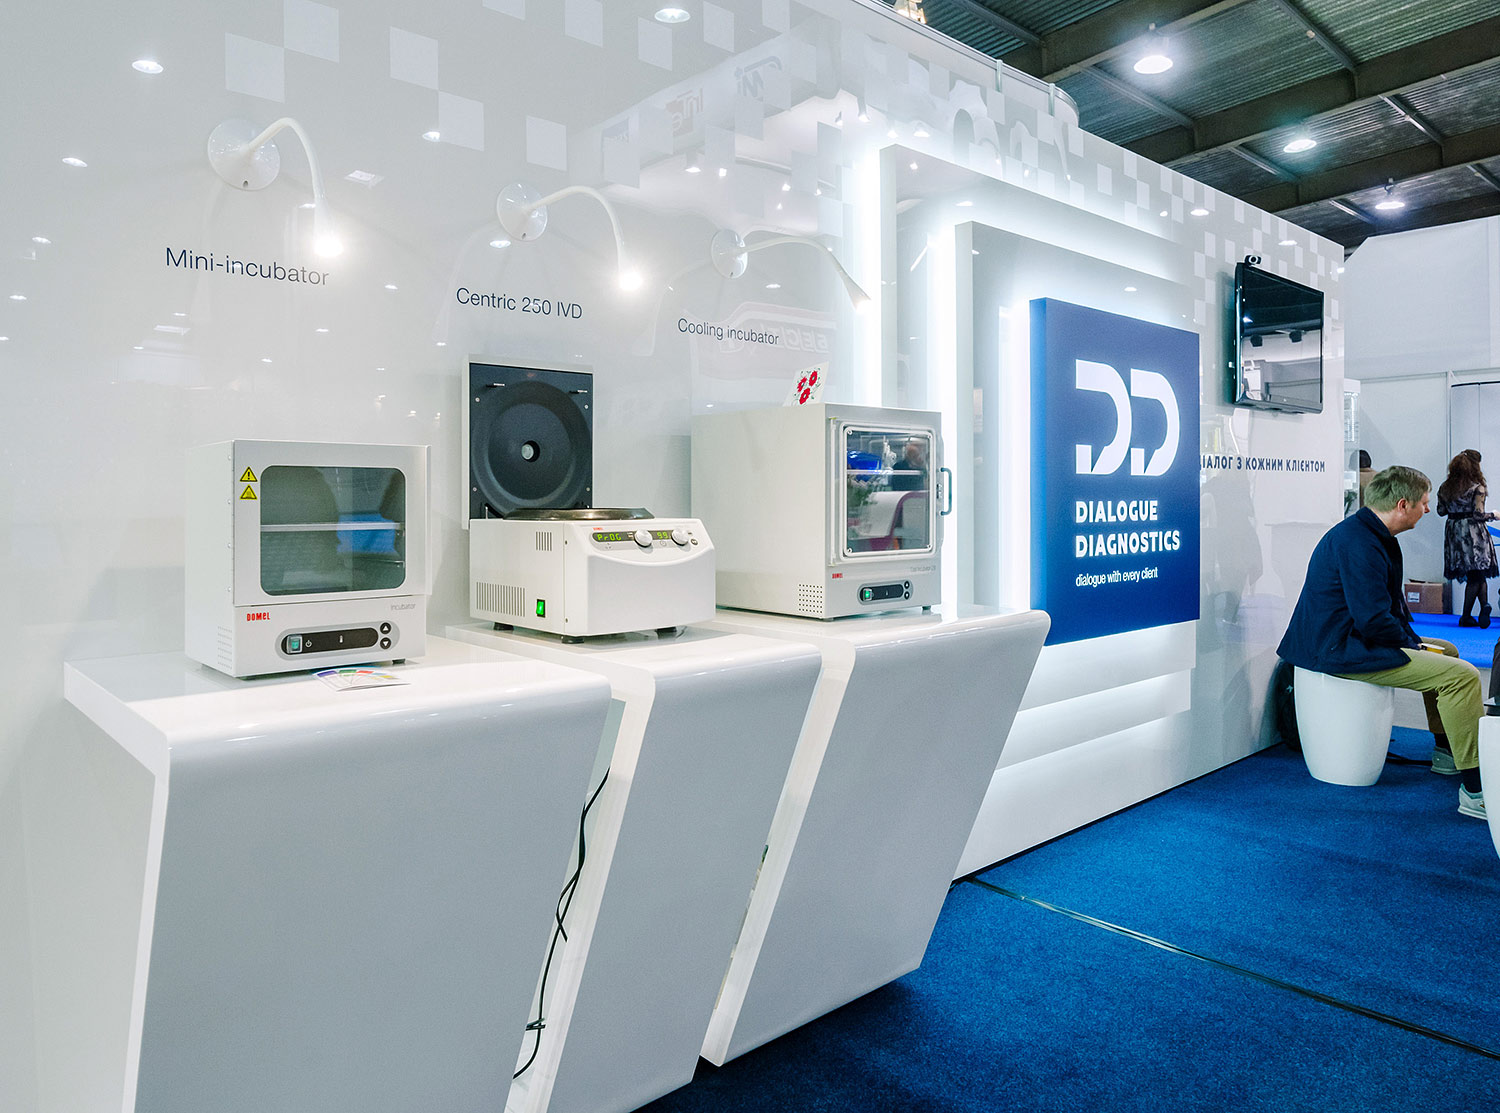 White stylish shelves for product samples. Laboratory analyzers. Dialogue Diagnostics exhibition stand.